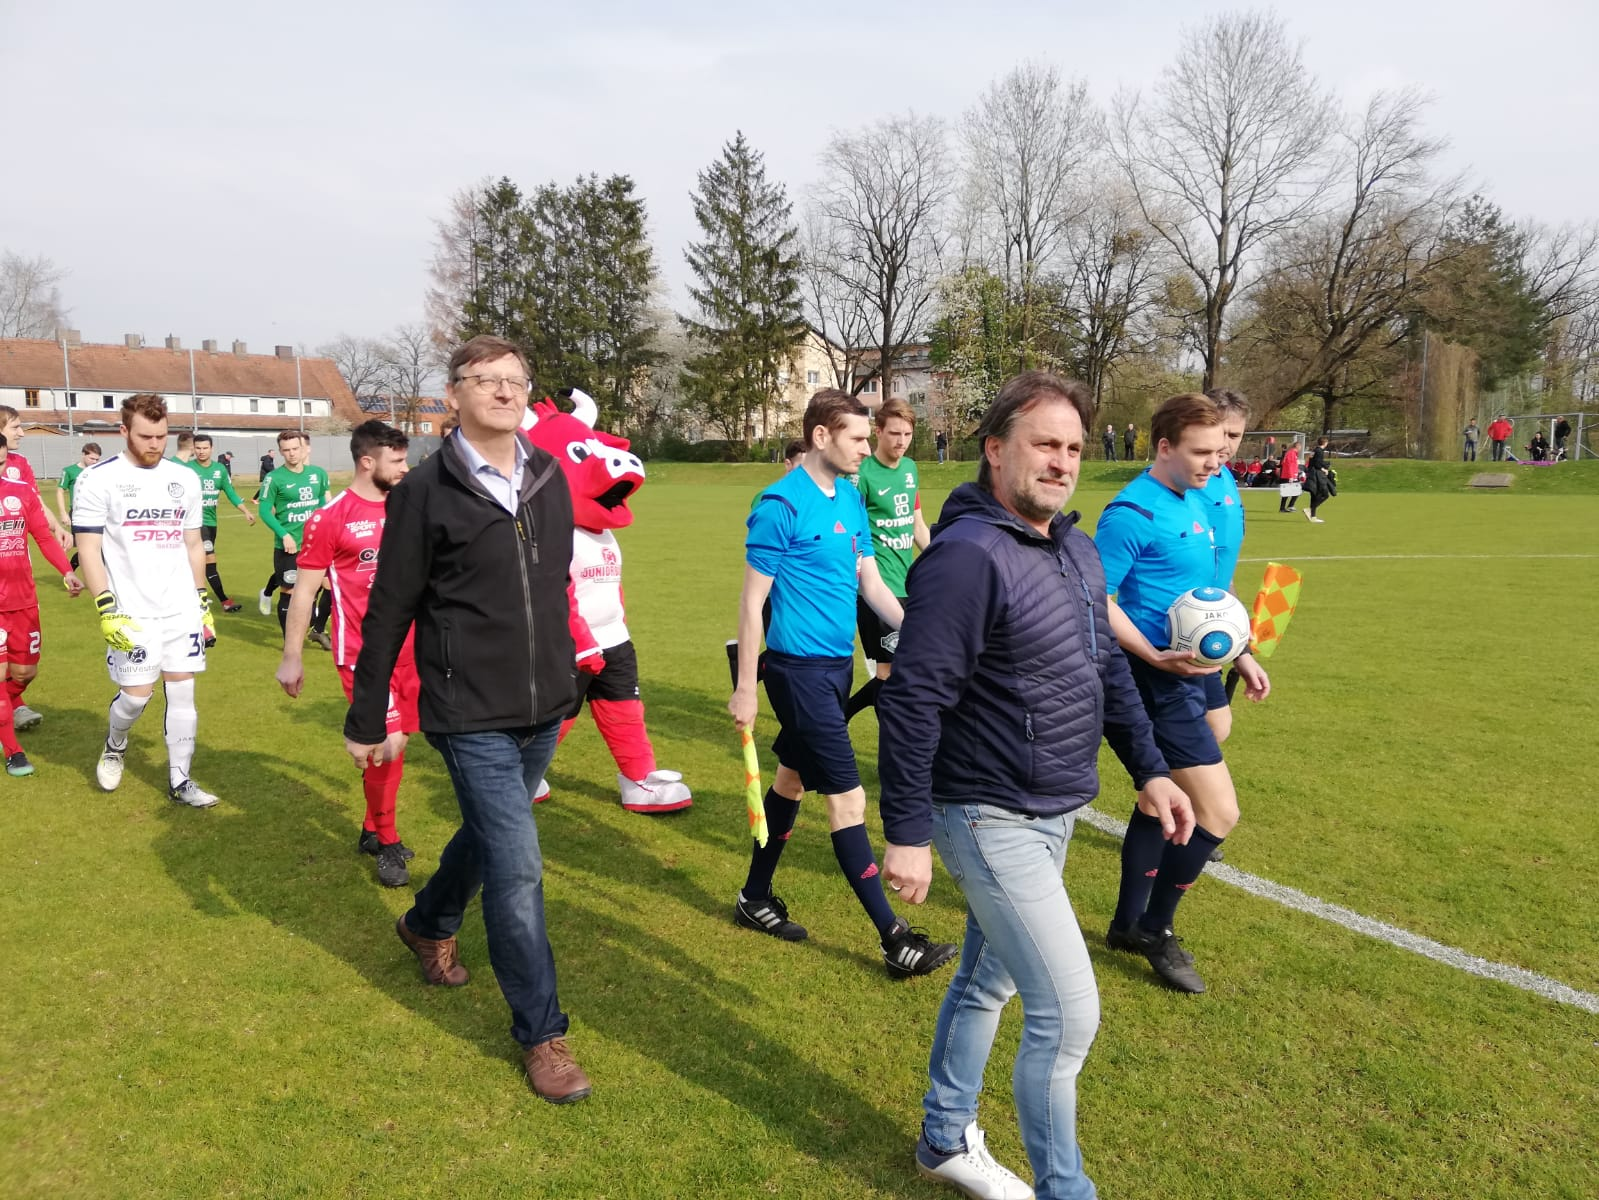 Ehrenanstoss Pillgrab Hans ASK vs Grieskirchen 13 04 2019 (1)